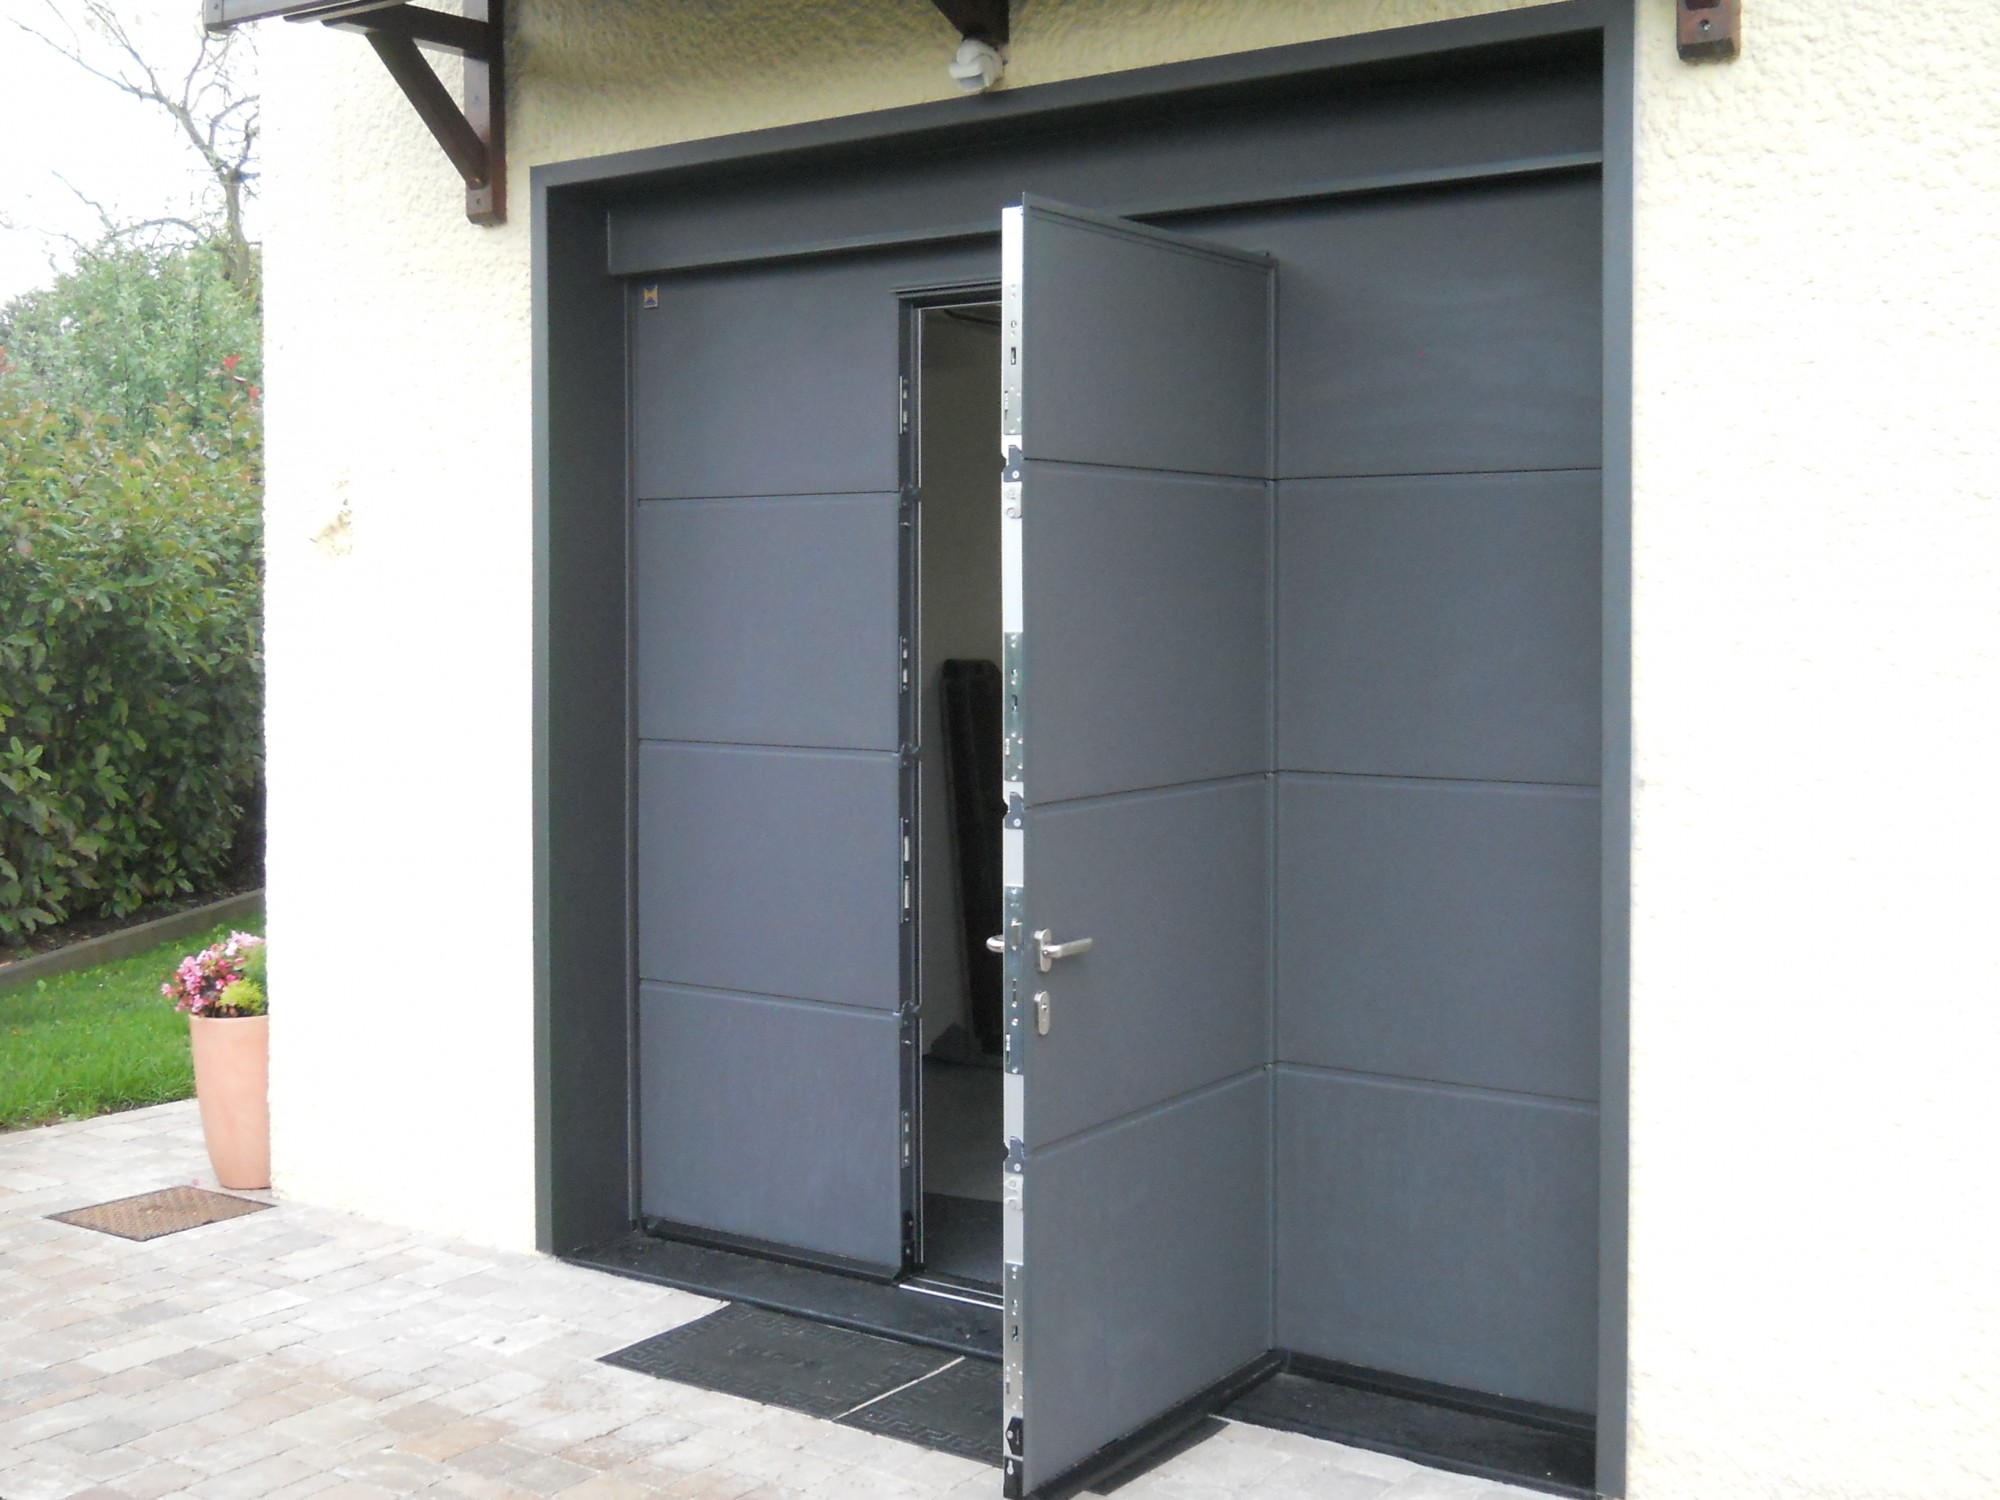 Porte de garage sectionnelle sur mesure hormann - Hormann porte garage ...